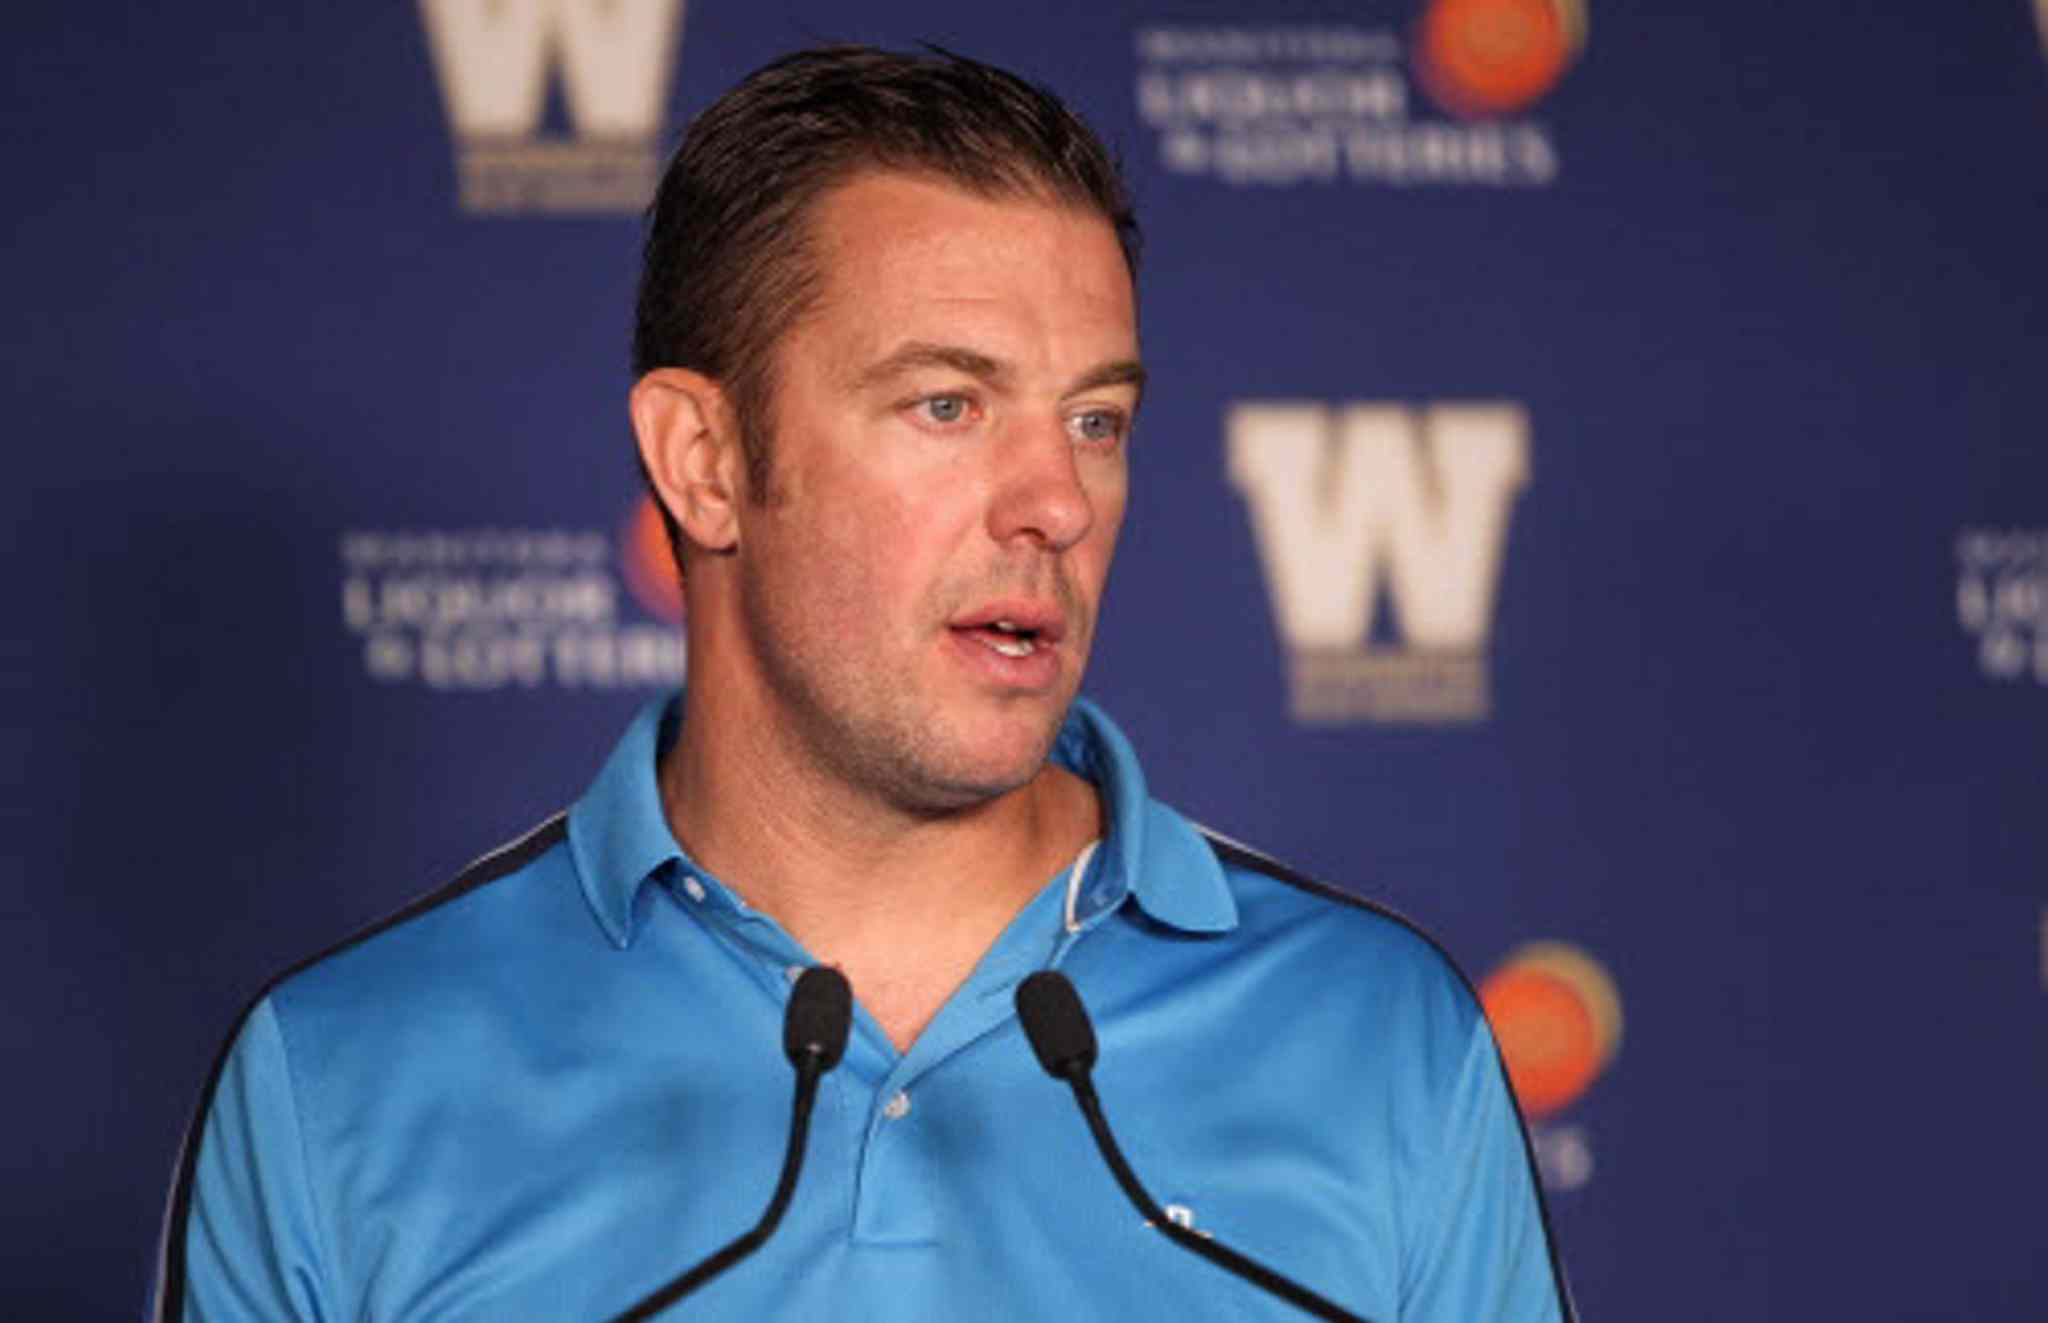 'Phone's been ringing off the hook. There's still a lot of stuff going on between now and 7 o'clock tomorrow night,' Bombers GM Kyle Walters said today.